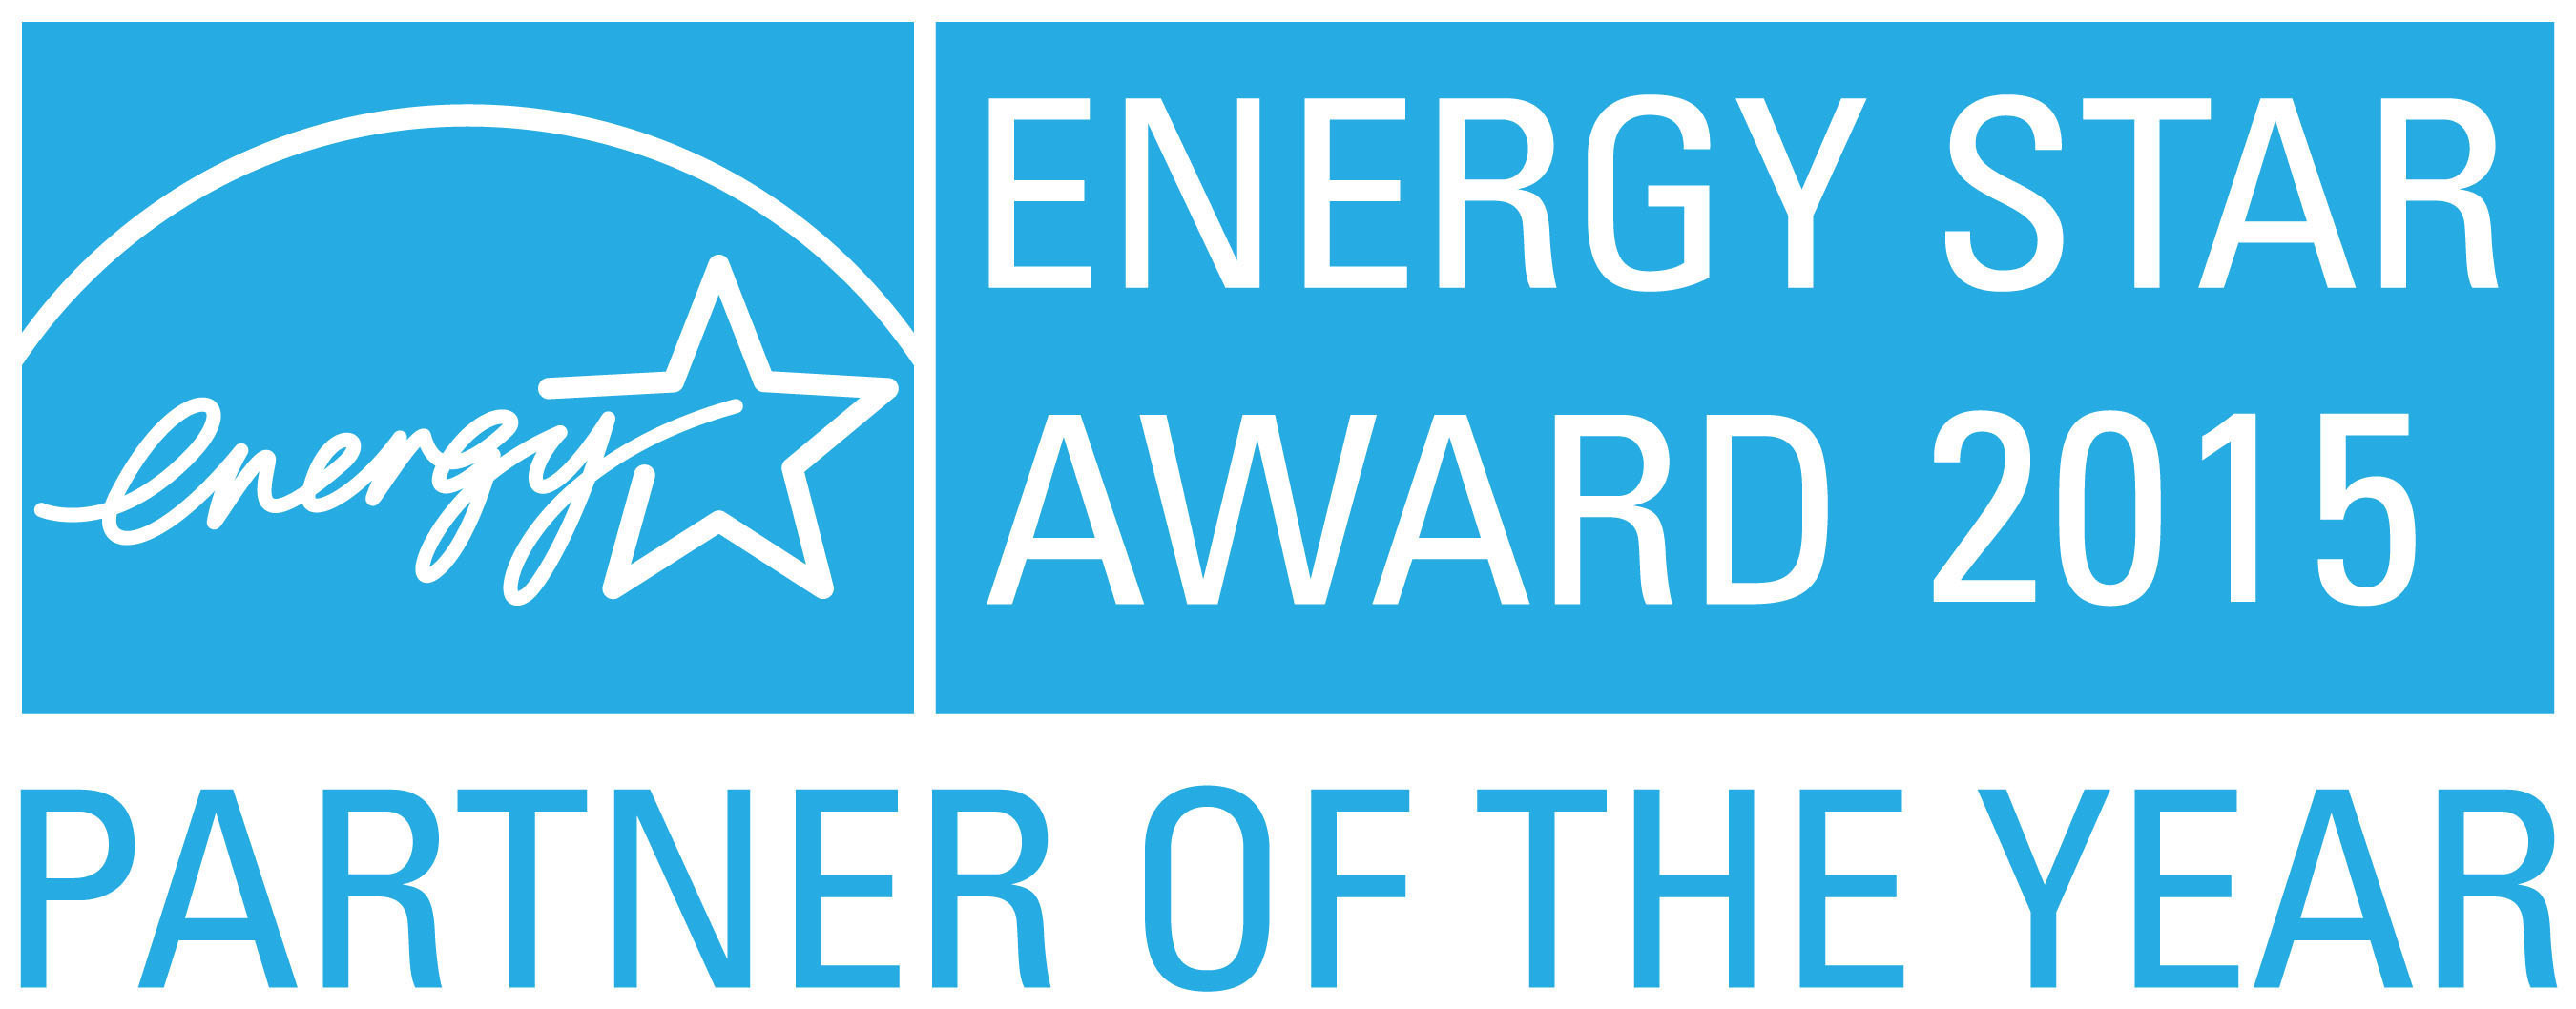 ENERGY STAR 2015 Partner of the Year